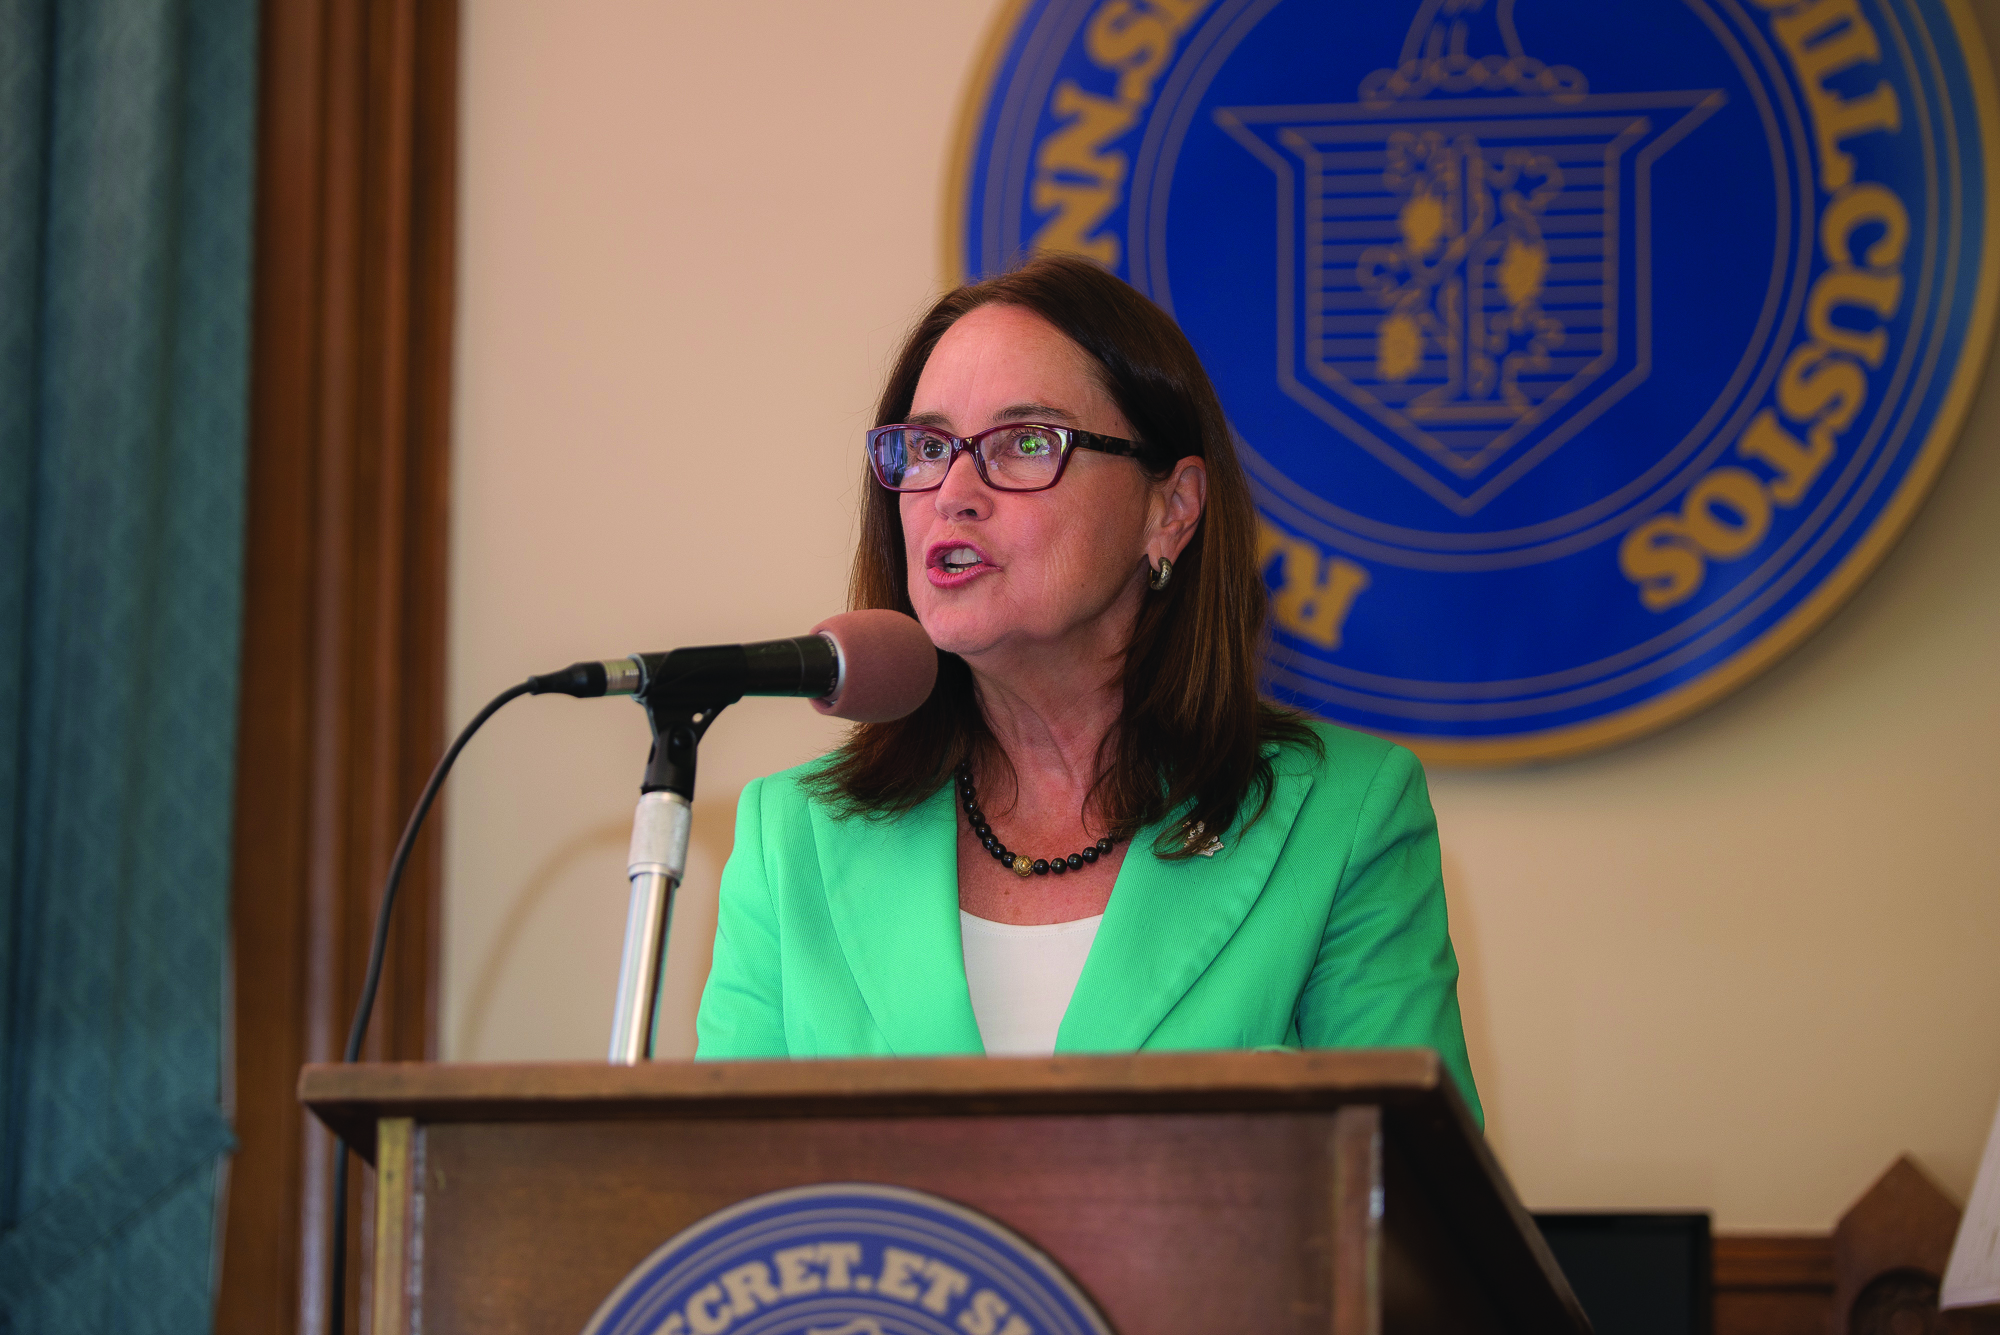 Secretary of the State Denise Merrill addresses the media at a September 2015 press conference announcing the partnership with the School of Business to deliver mandated training to the State's 338 Registrars of Voters.